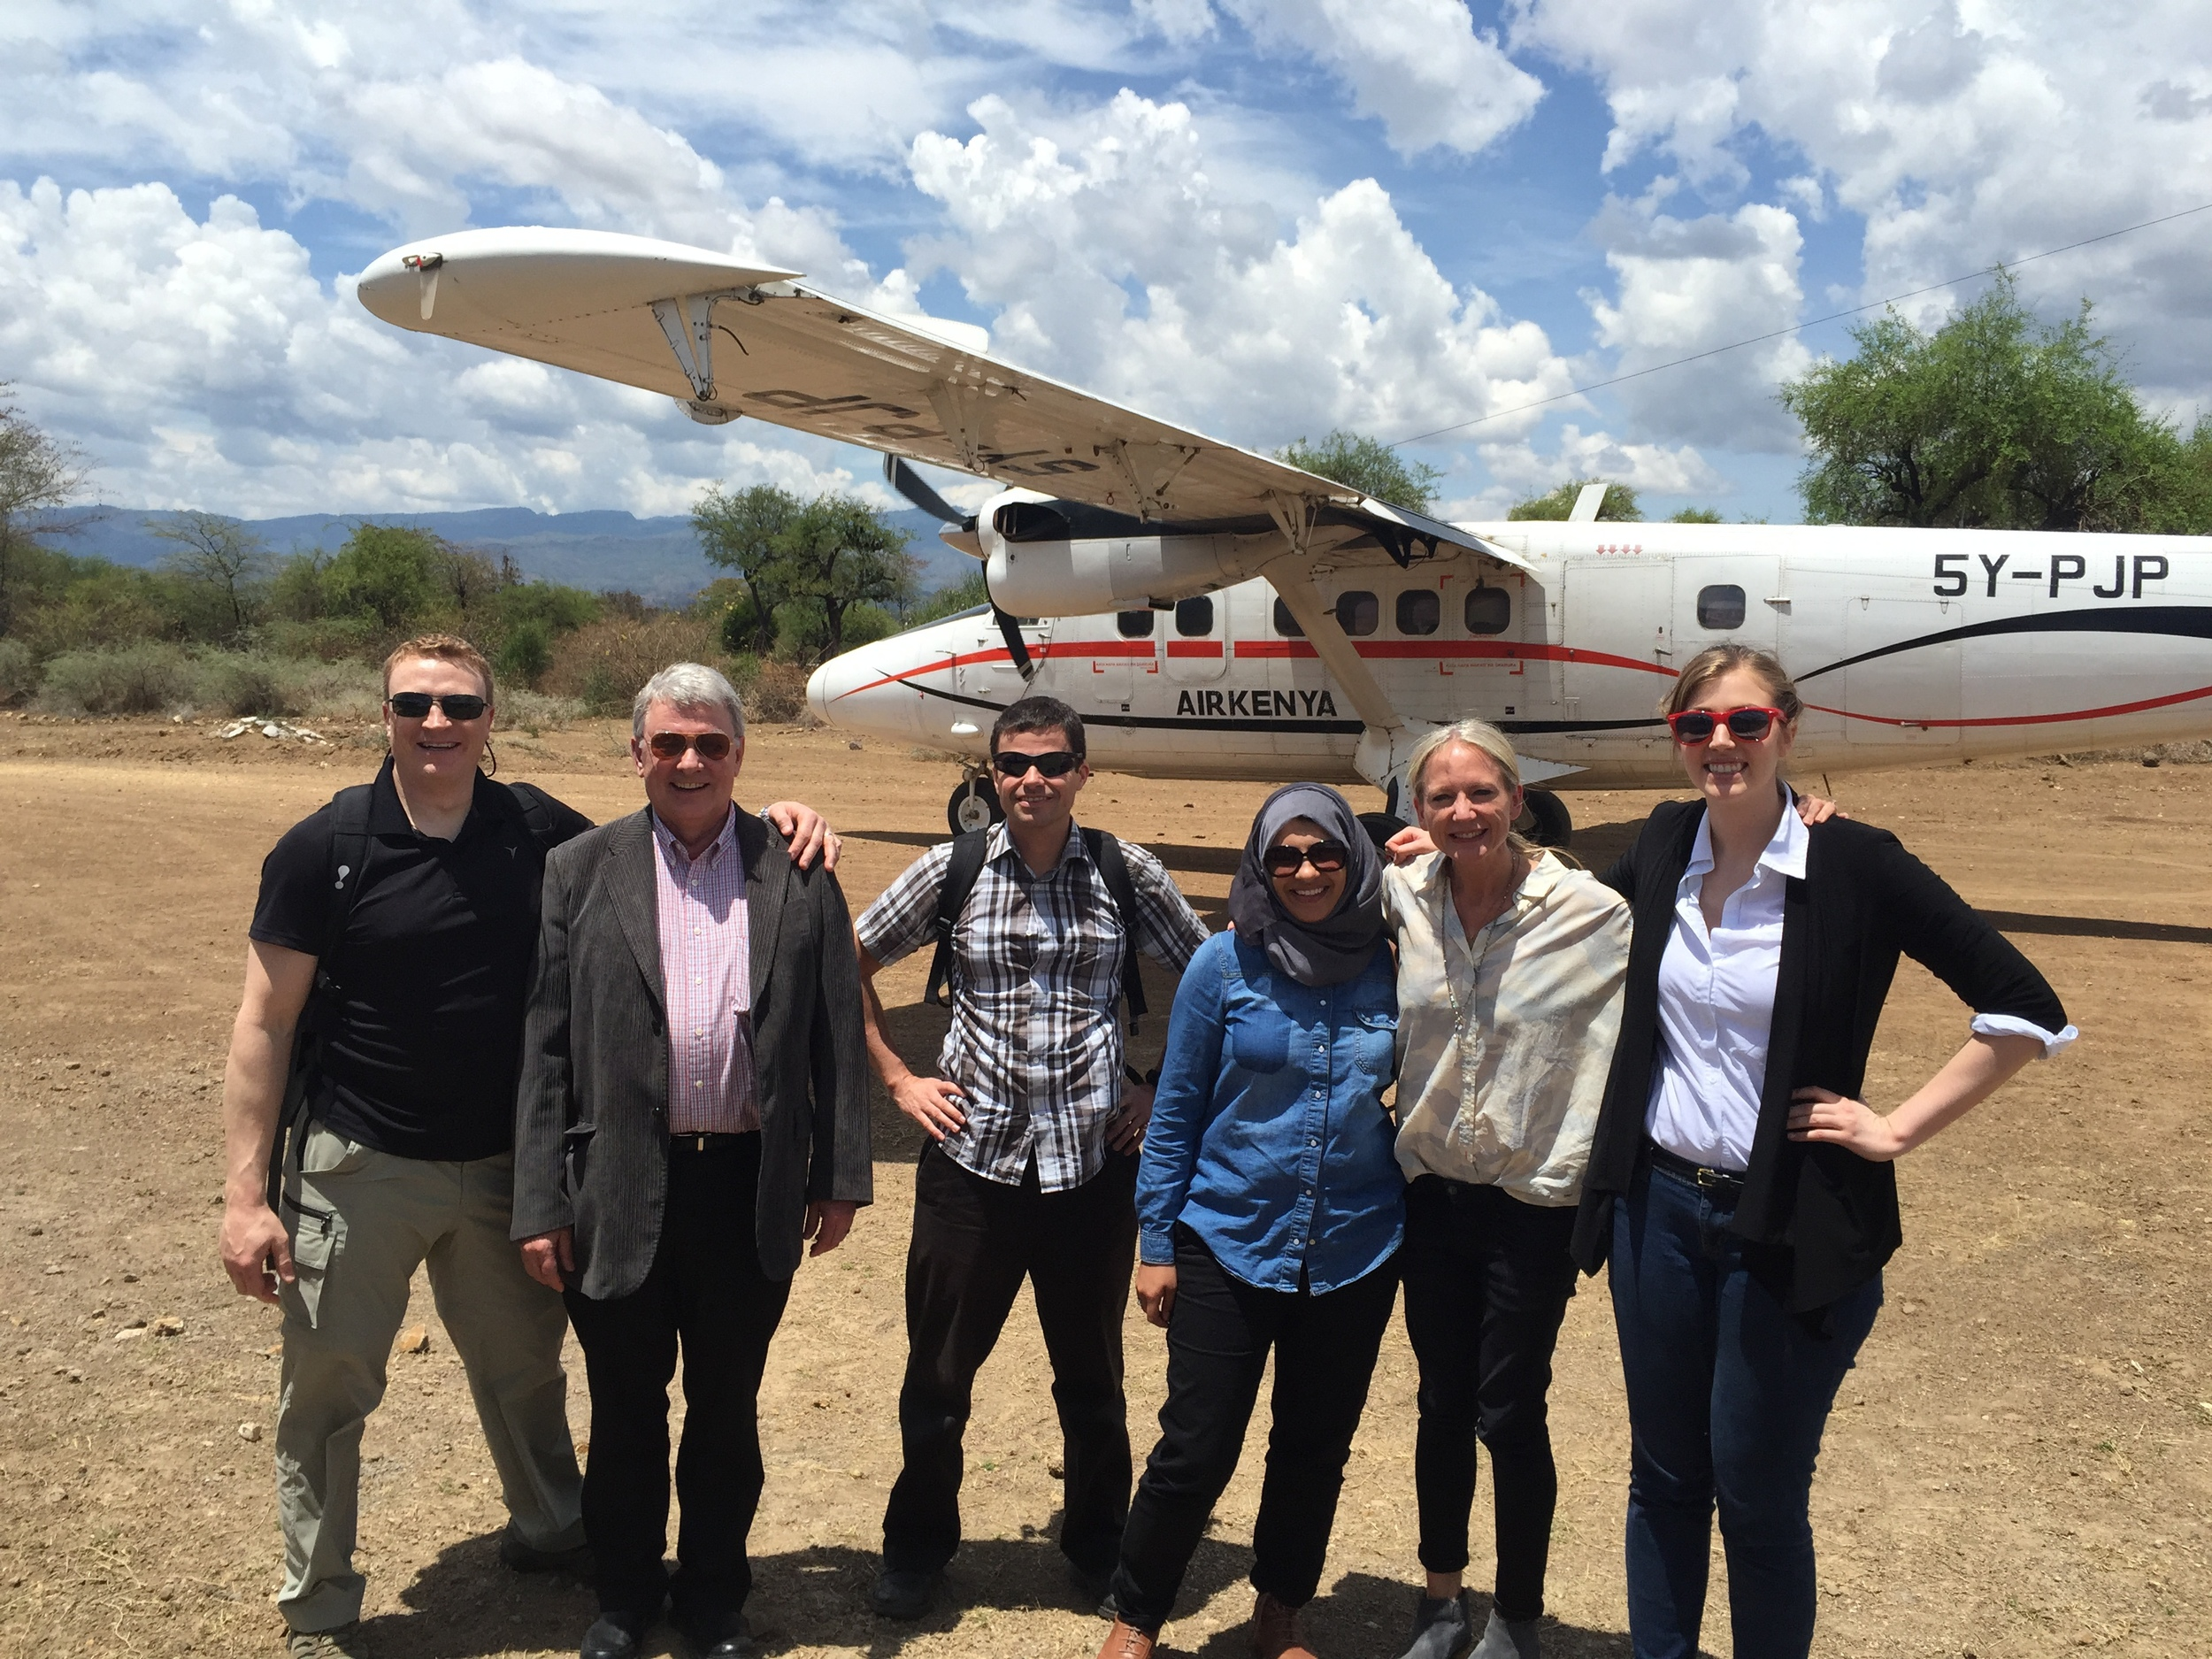 Arriving off the bush plane from Nairobi on the Fluorspar air strip